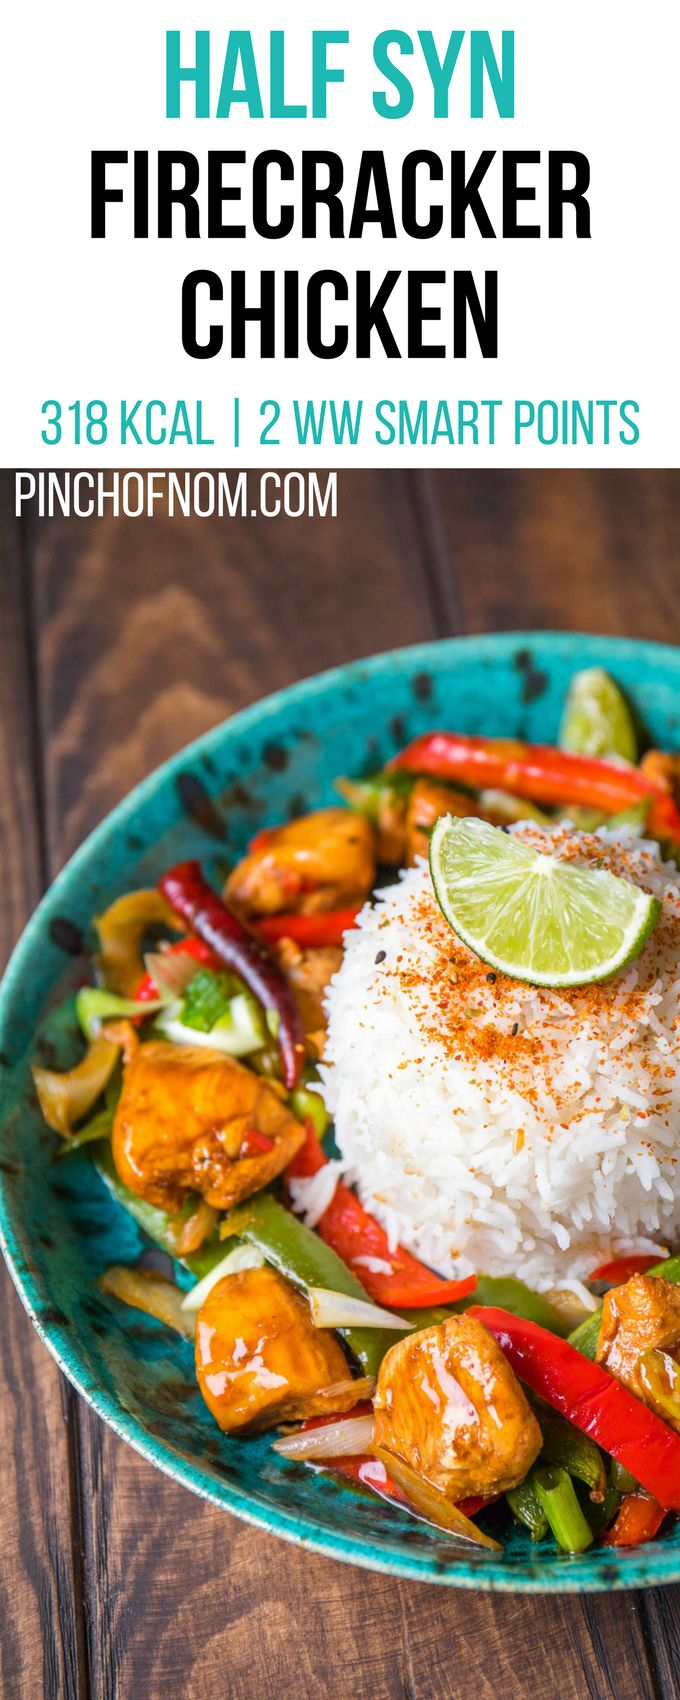 Half Syn Firecracker Chicken | Pinch Of Nom Slimming World Recipes 318 kcal | 0.5 Syn | 2 Weight Watchers Smart Points